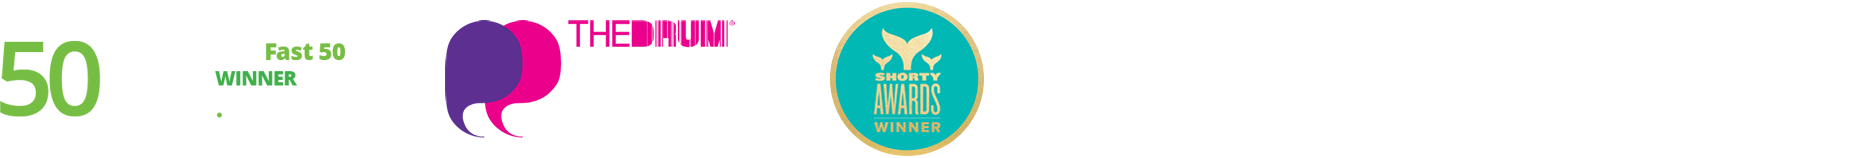 Awards- Deloitte Fast 50 2016 UK Winner, The DRUM social buzz awards, Shorty awards finalist, CIM Marketing Excellence Awards 2017 Finalist - best use of social media